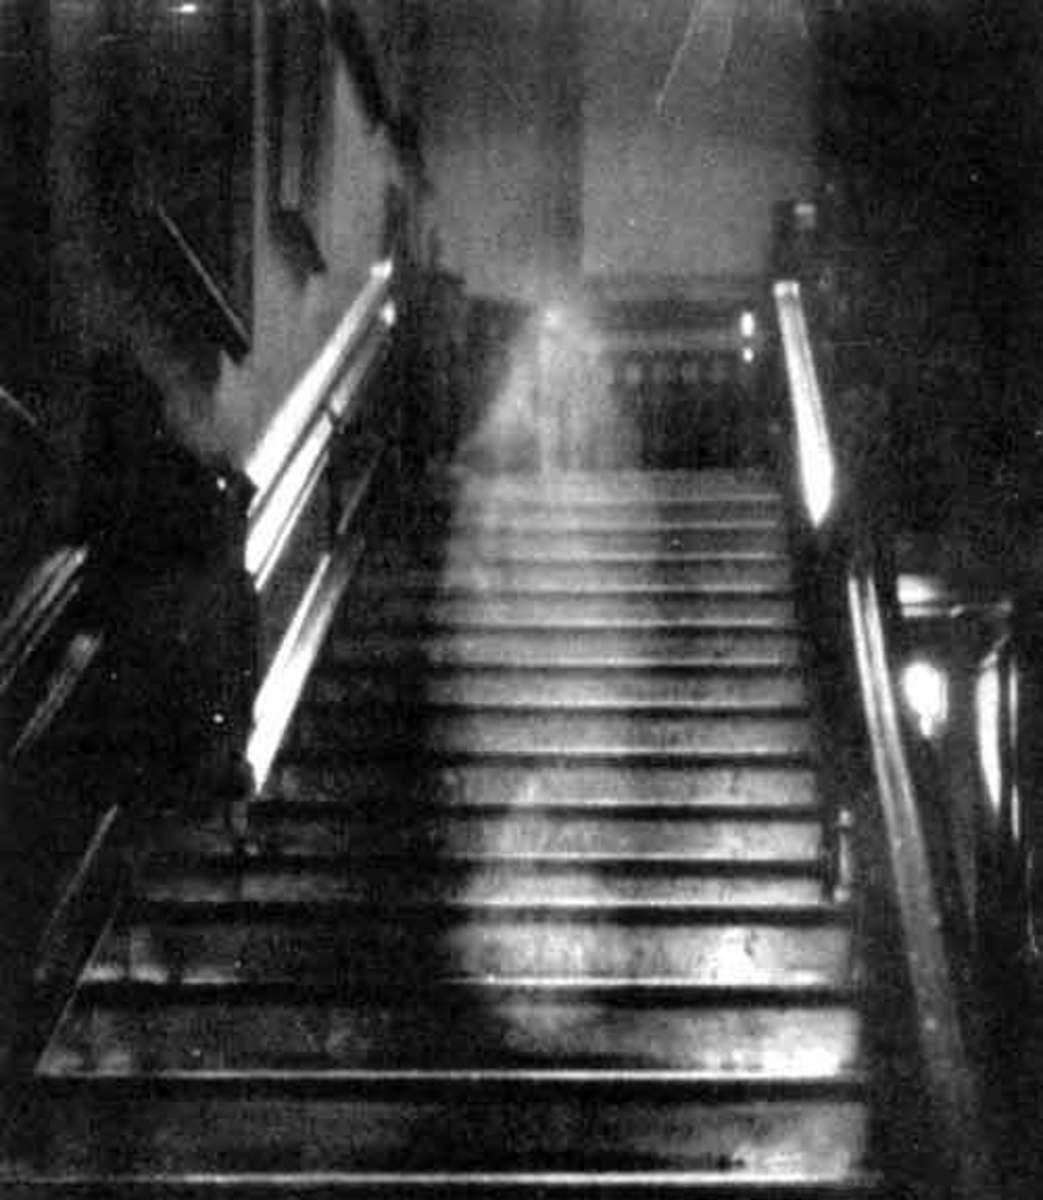 The Brown Lady is one of the most famous ghost photos ever.